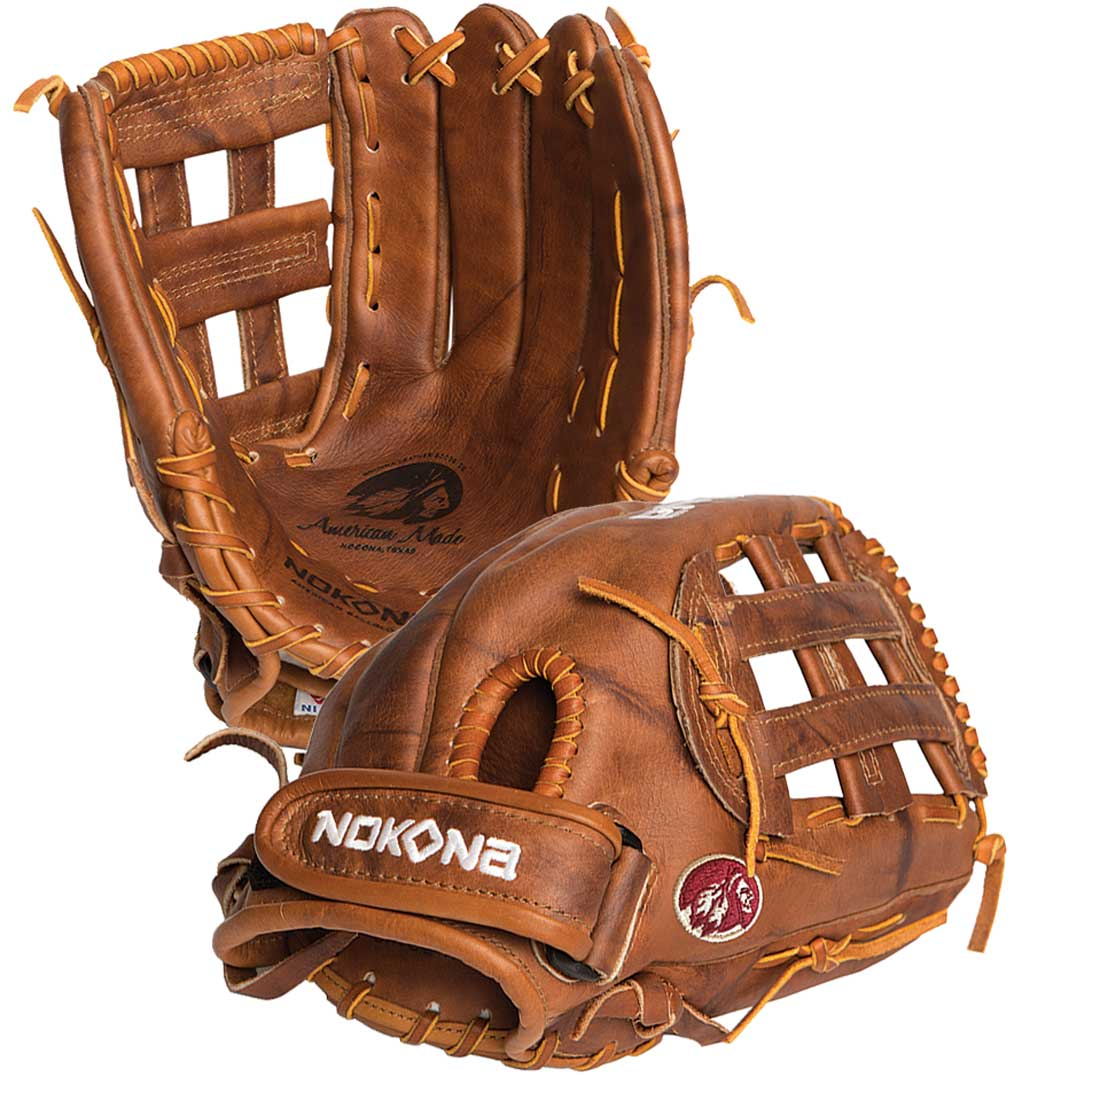 Softball glove